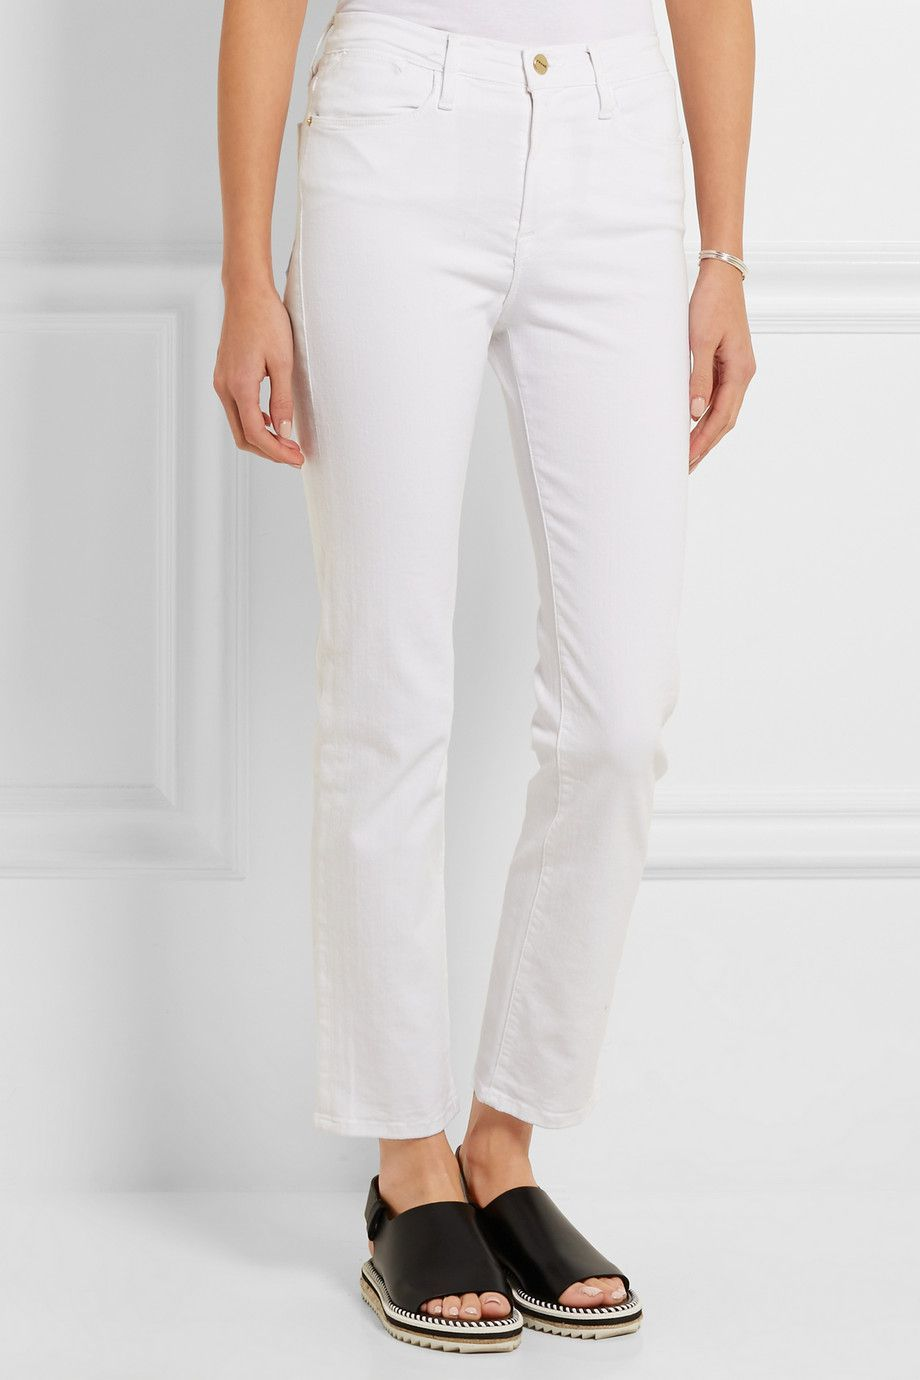 f08685744300e How to Ditch Your Skinny Jeans - Racked